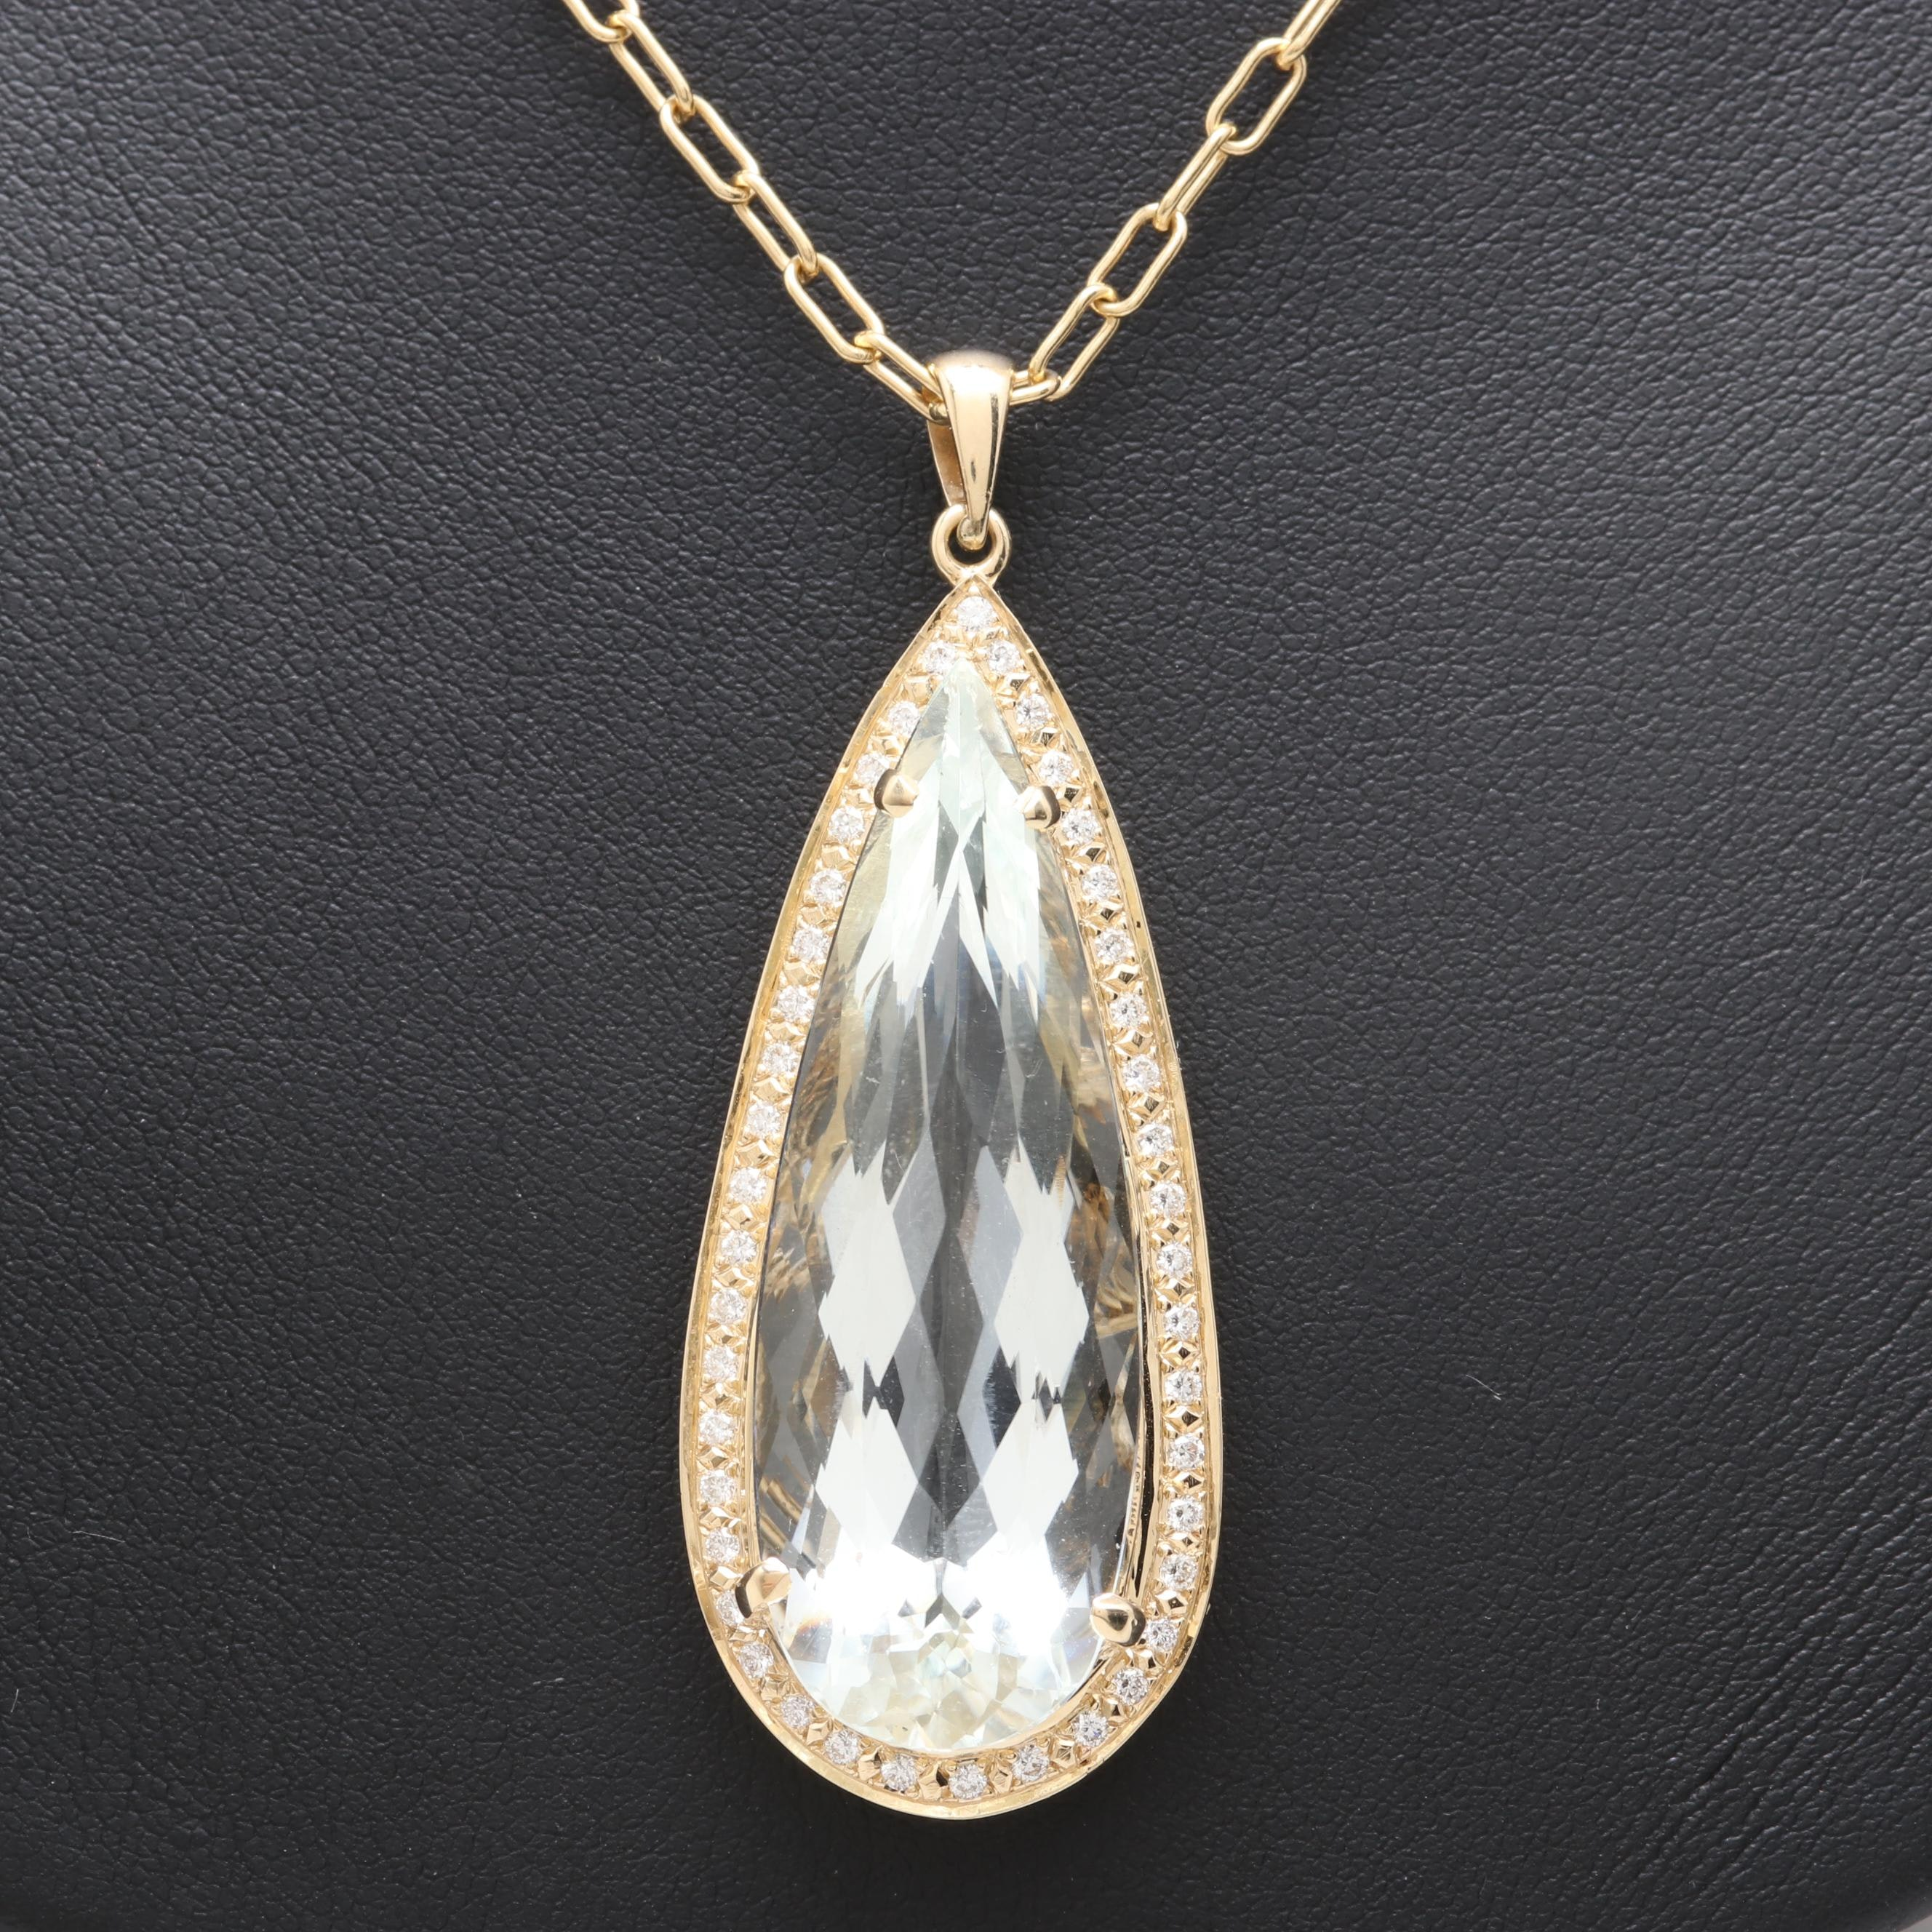 14K Yellow Gold Synthetic Aquamarine and Diamond Pendant Necklace